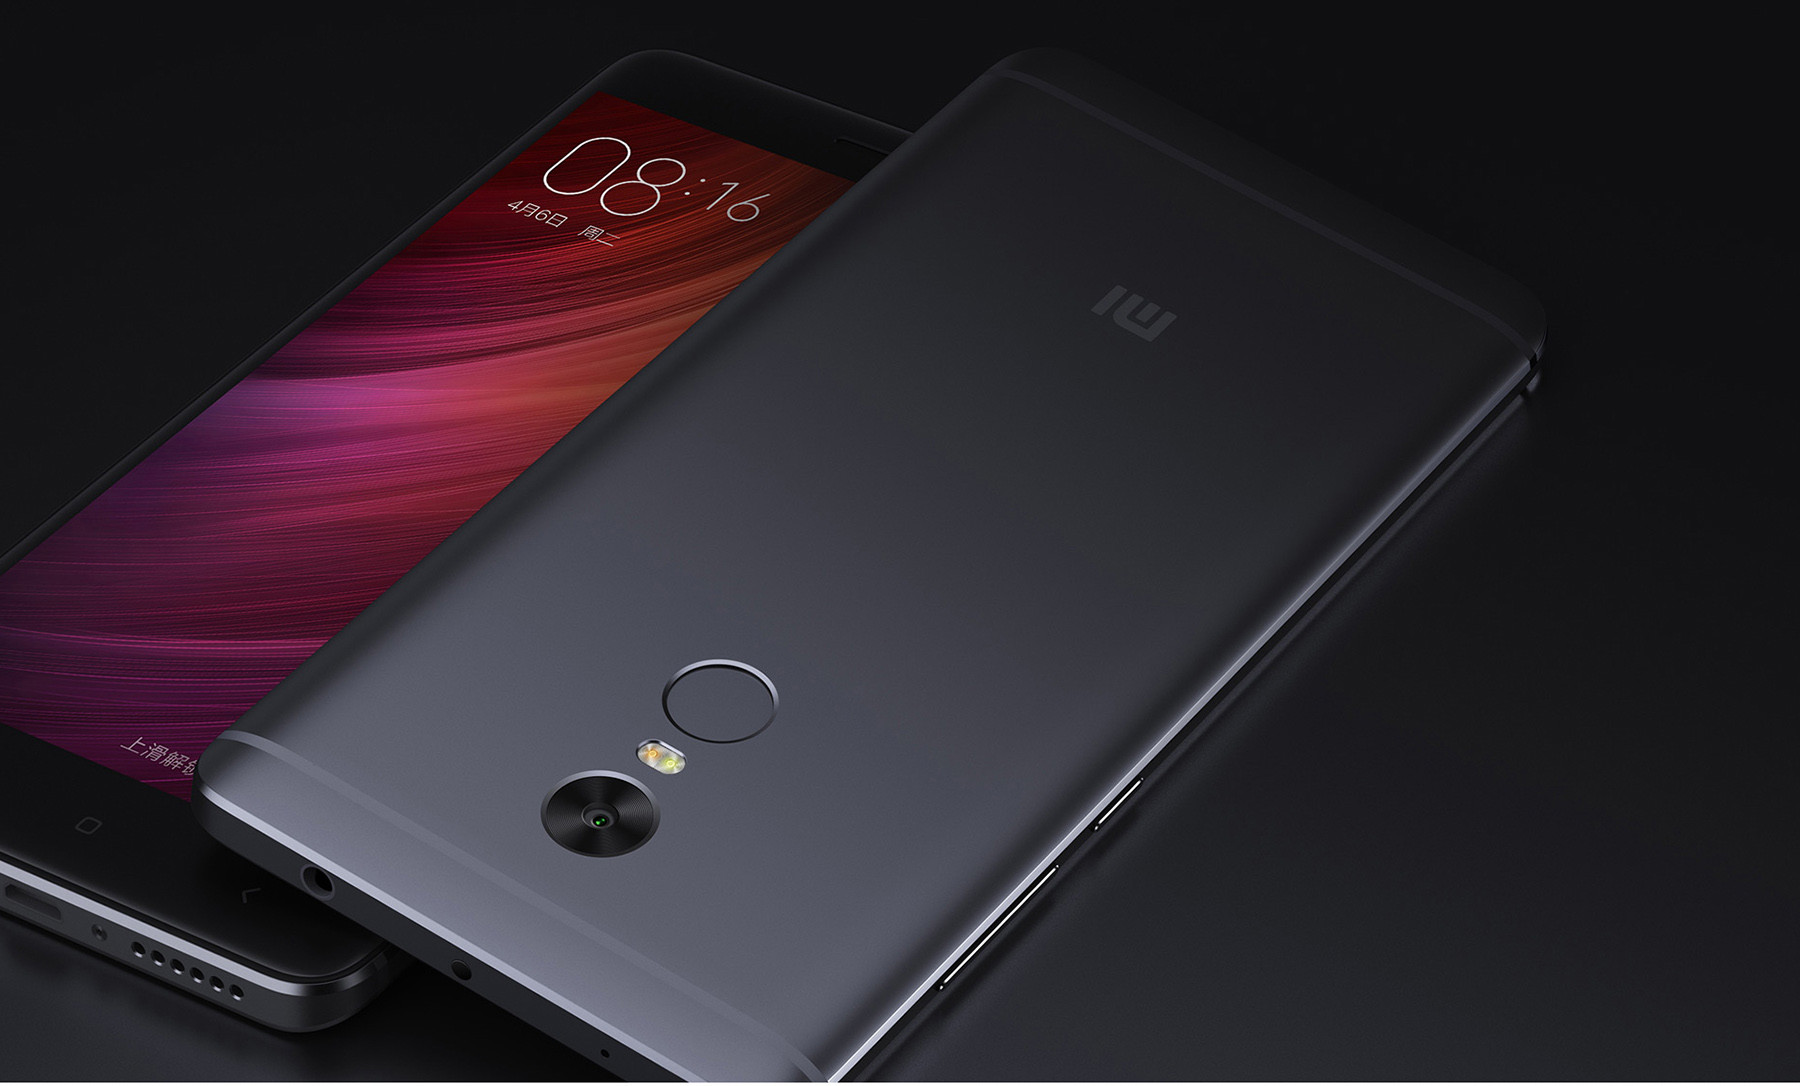 Xiaomi Redmi Note 4 ★ MIUI 9 Global Beta ROM 7.9.22 ★ Download